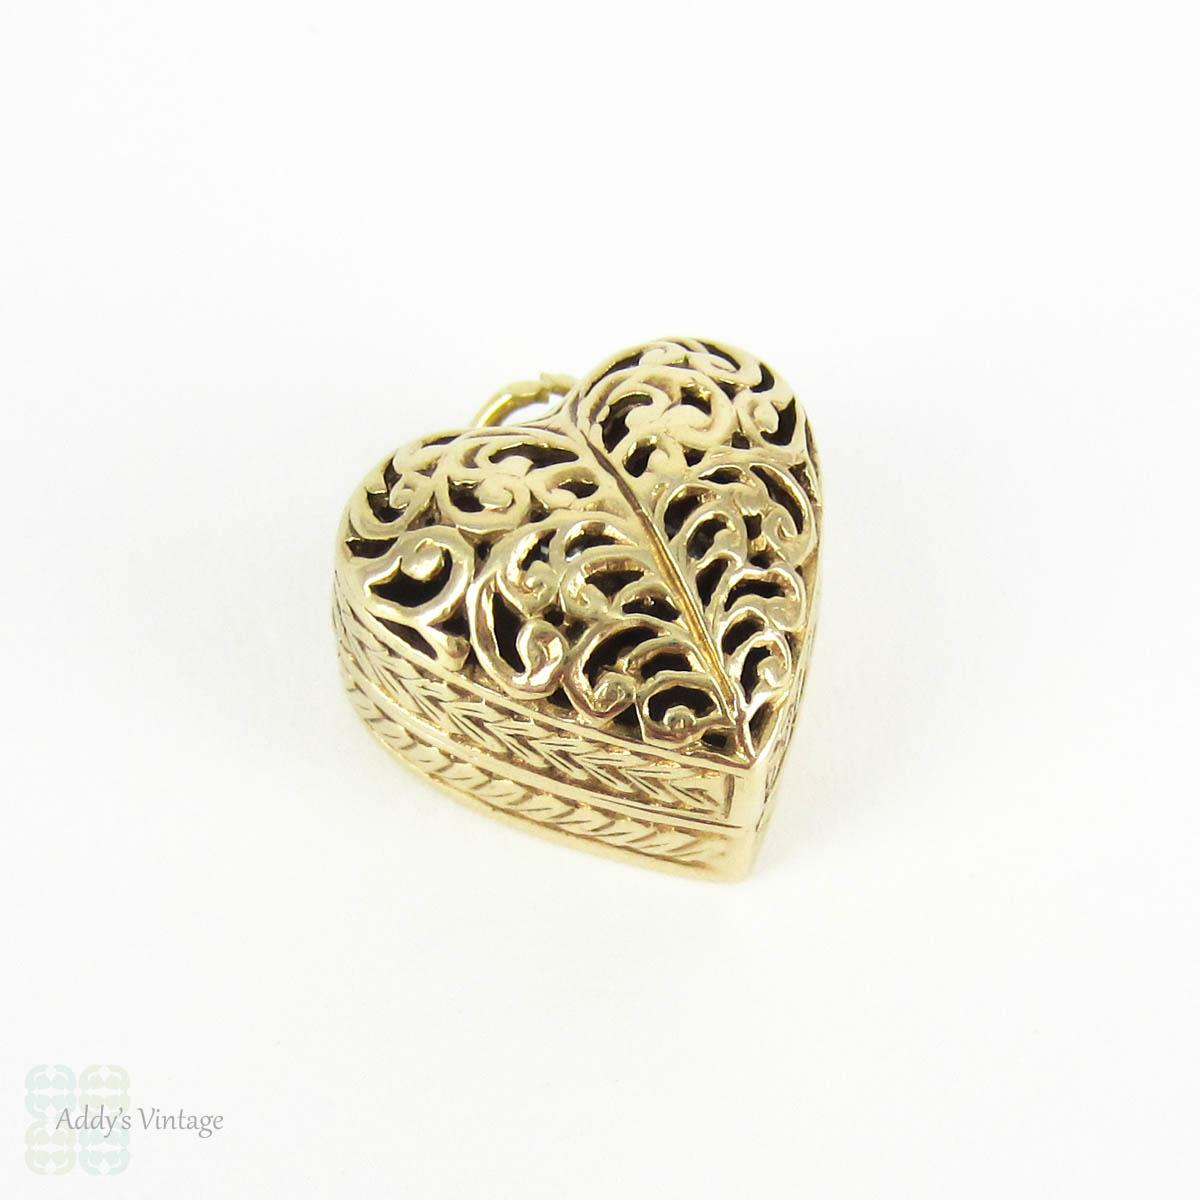 Vintage Heart Ring Box Charm Opens to Reveal Engagement Ring